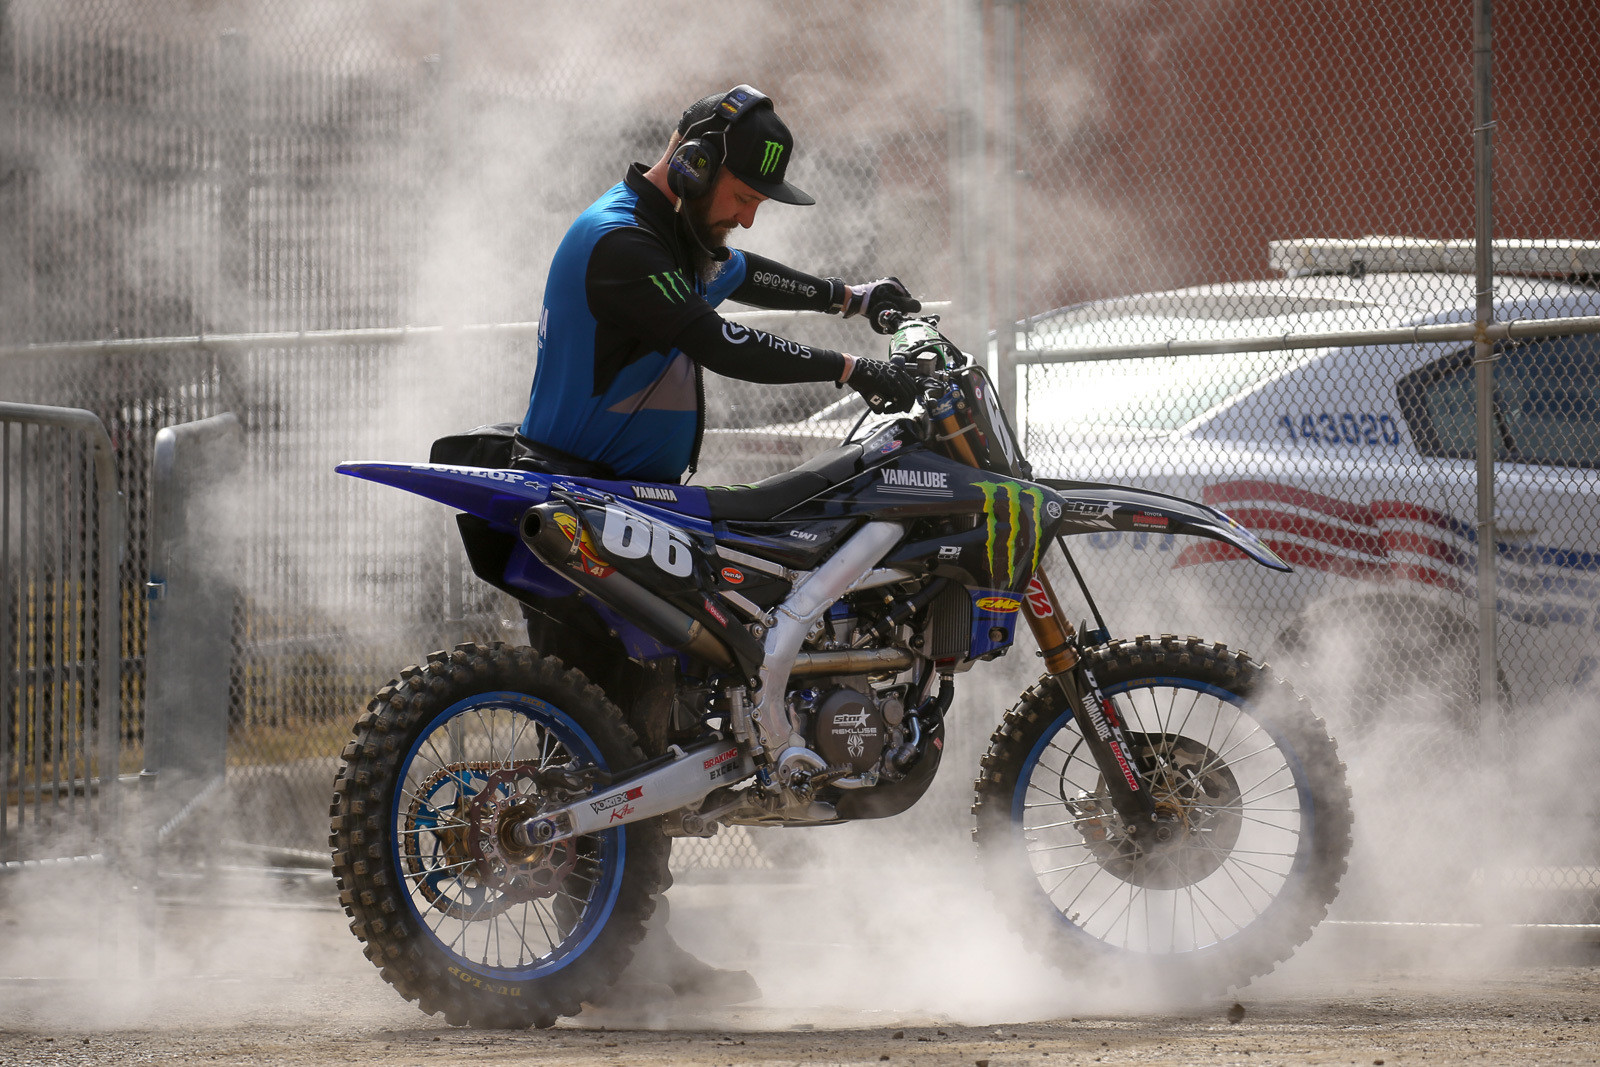 Jay Burgess taking advantage of one of the steaming manhole covers while warming up Mitchell Oldenburg's bike. He later said that it maybe wasn't the best idea, as it was pretty funky smelling.